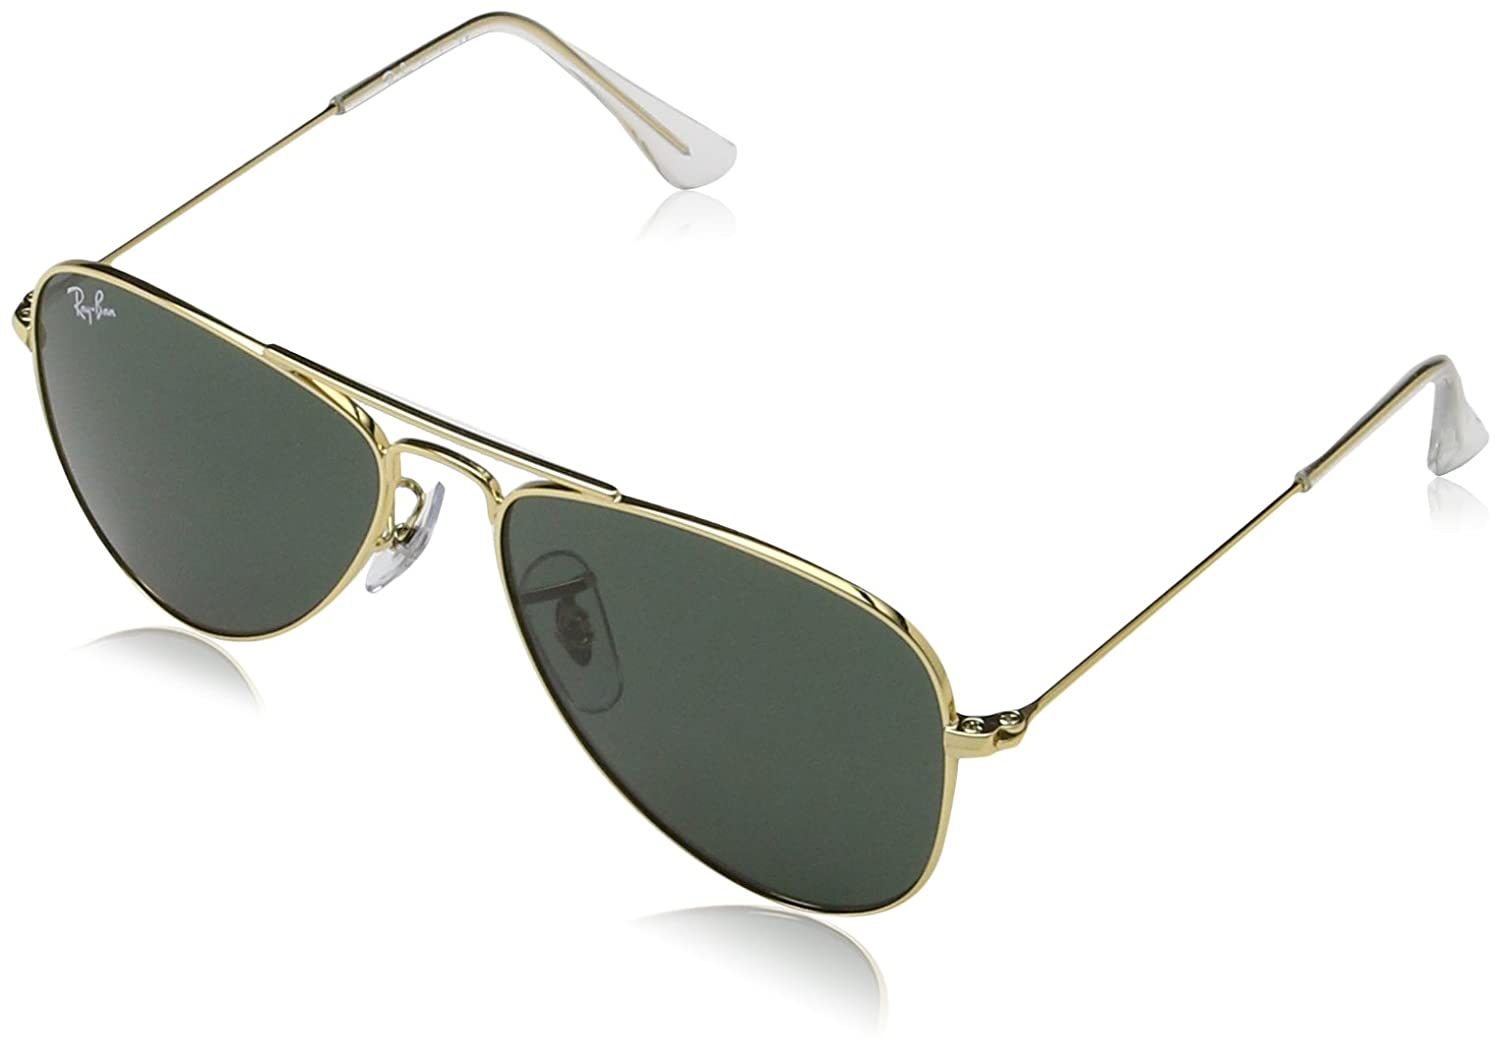 Ray-Ban Ray Ban Jr. Boys Ray-ban Kids Aviator Junior, Gold Frame Green Lens, 50 mm 223/71